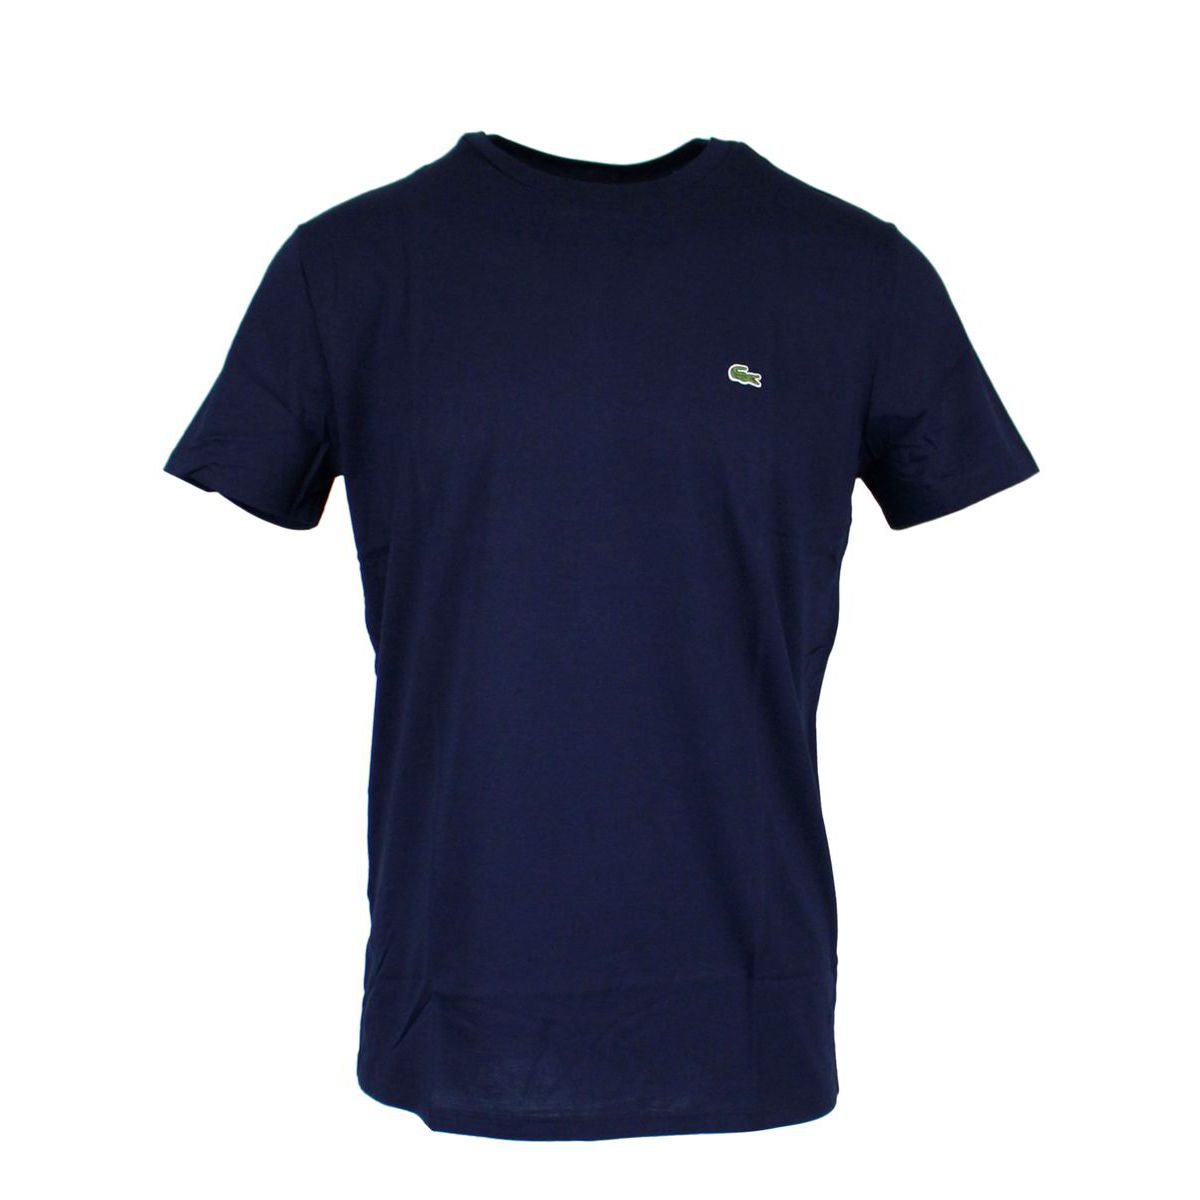 Crew-neck t-shirt with logo embroidery Navy Lacoste